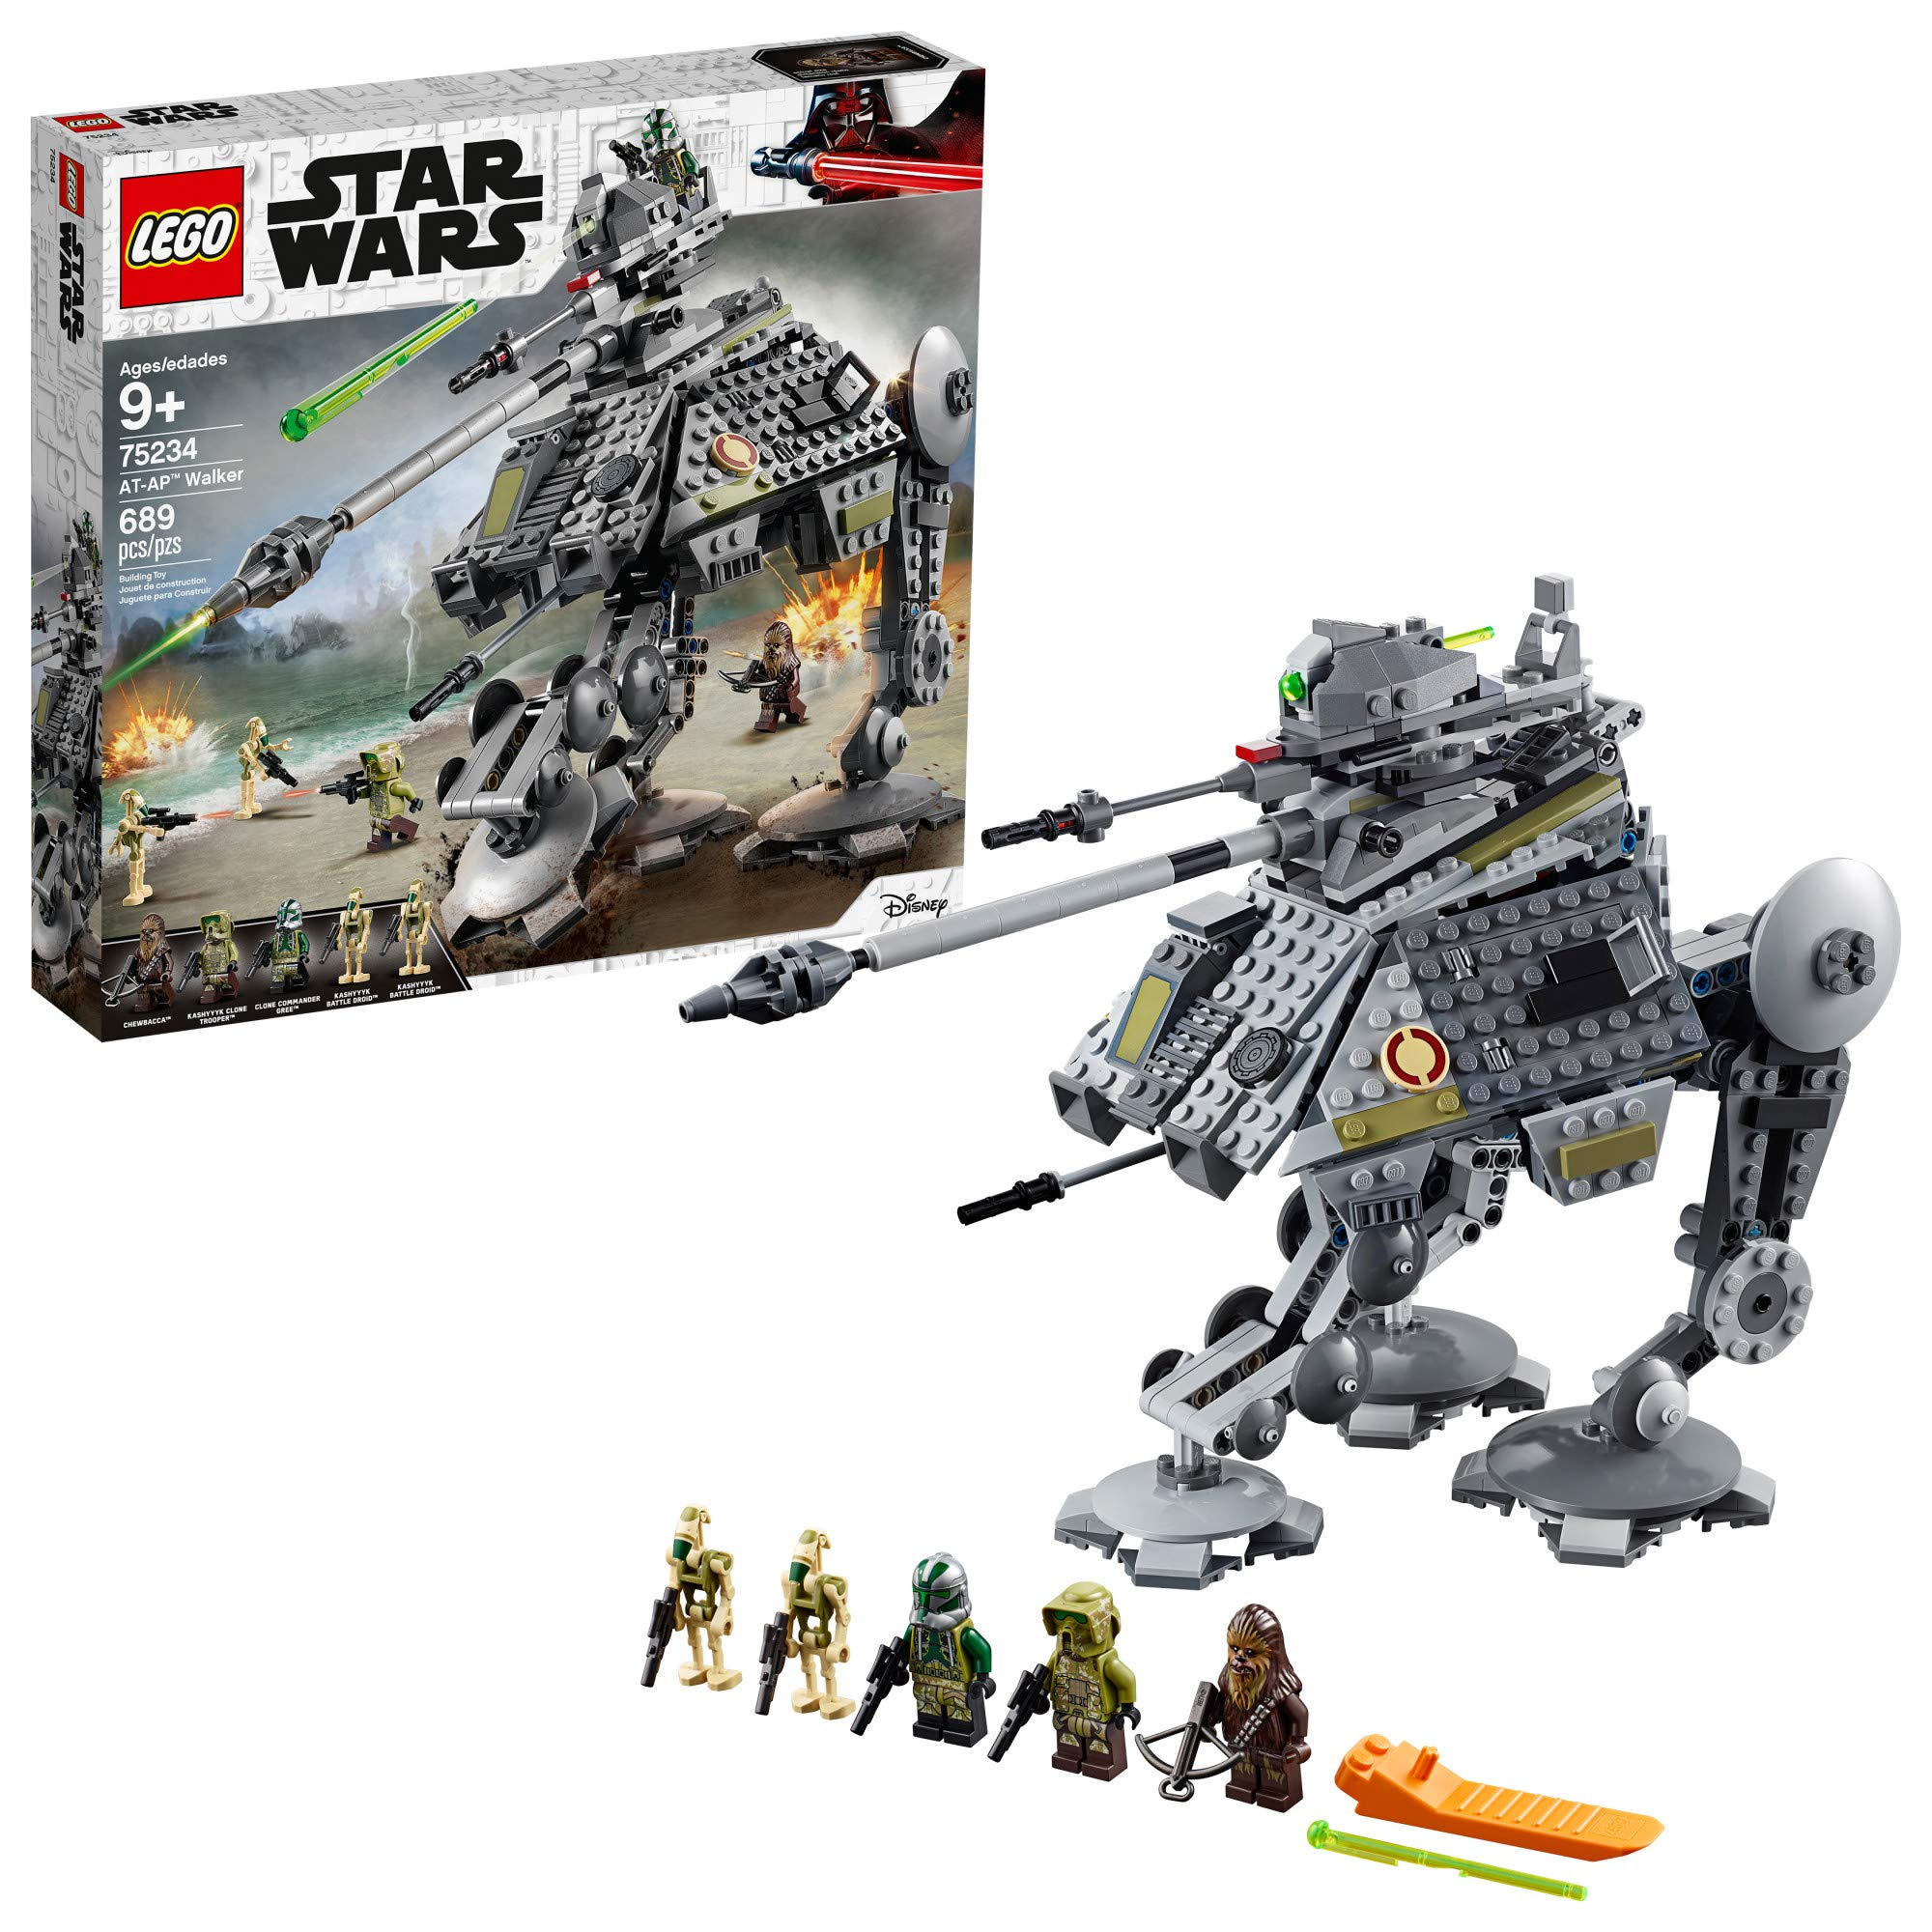 LEGO Star Wars: Revenge of the Sith AT-AP Walker 75234 Building Kit, 2019 (689 Pieces) by LEGO